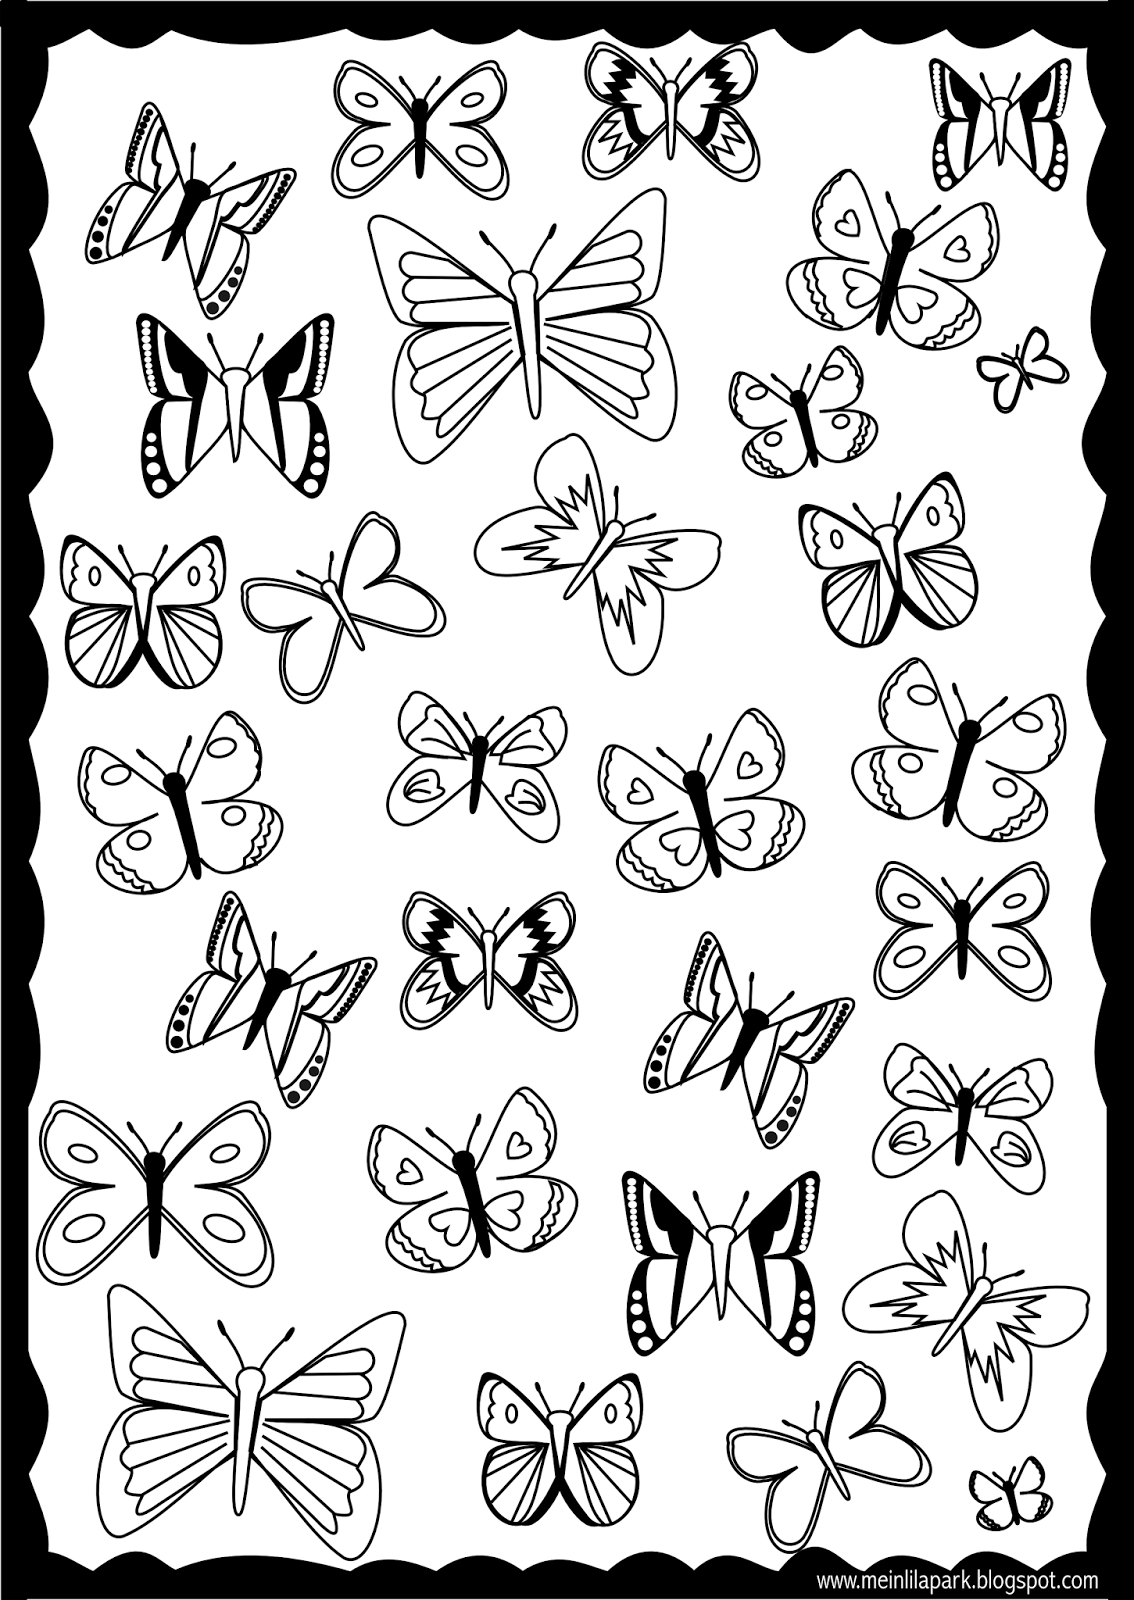 Free printable butterfly coloring page - ausdruckbare ...